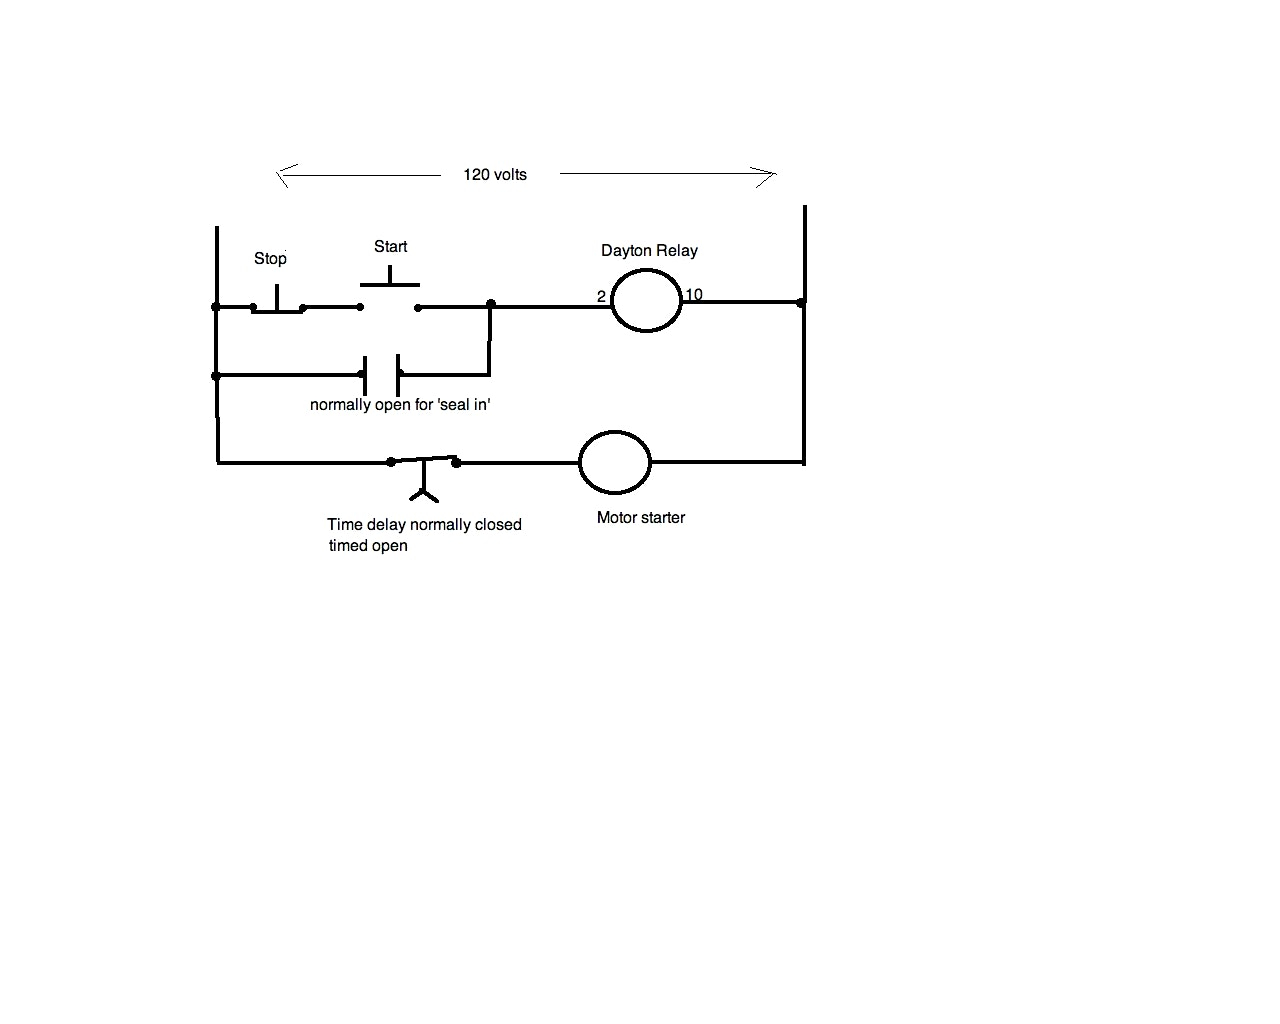 wiring diagram symbol for relay harley davidson radio dayton time delay download